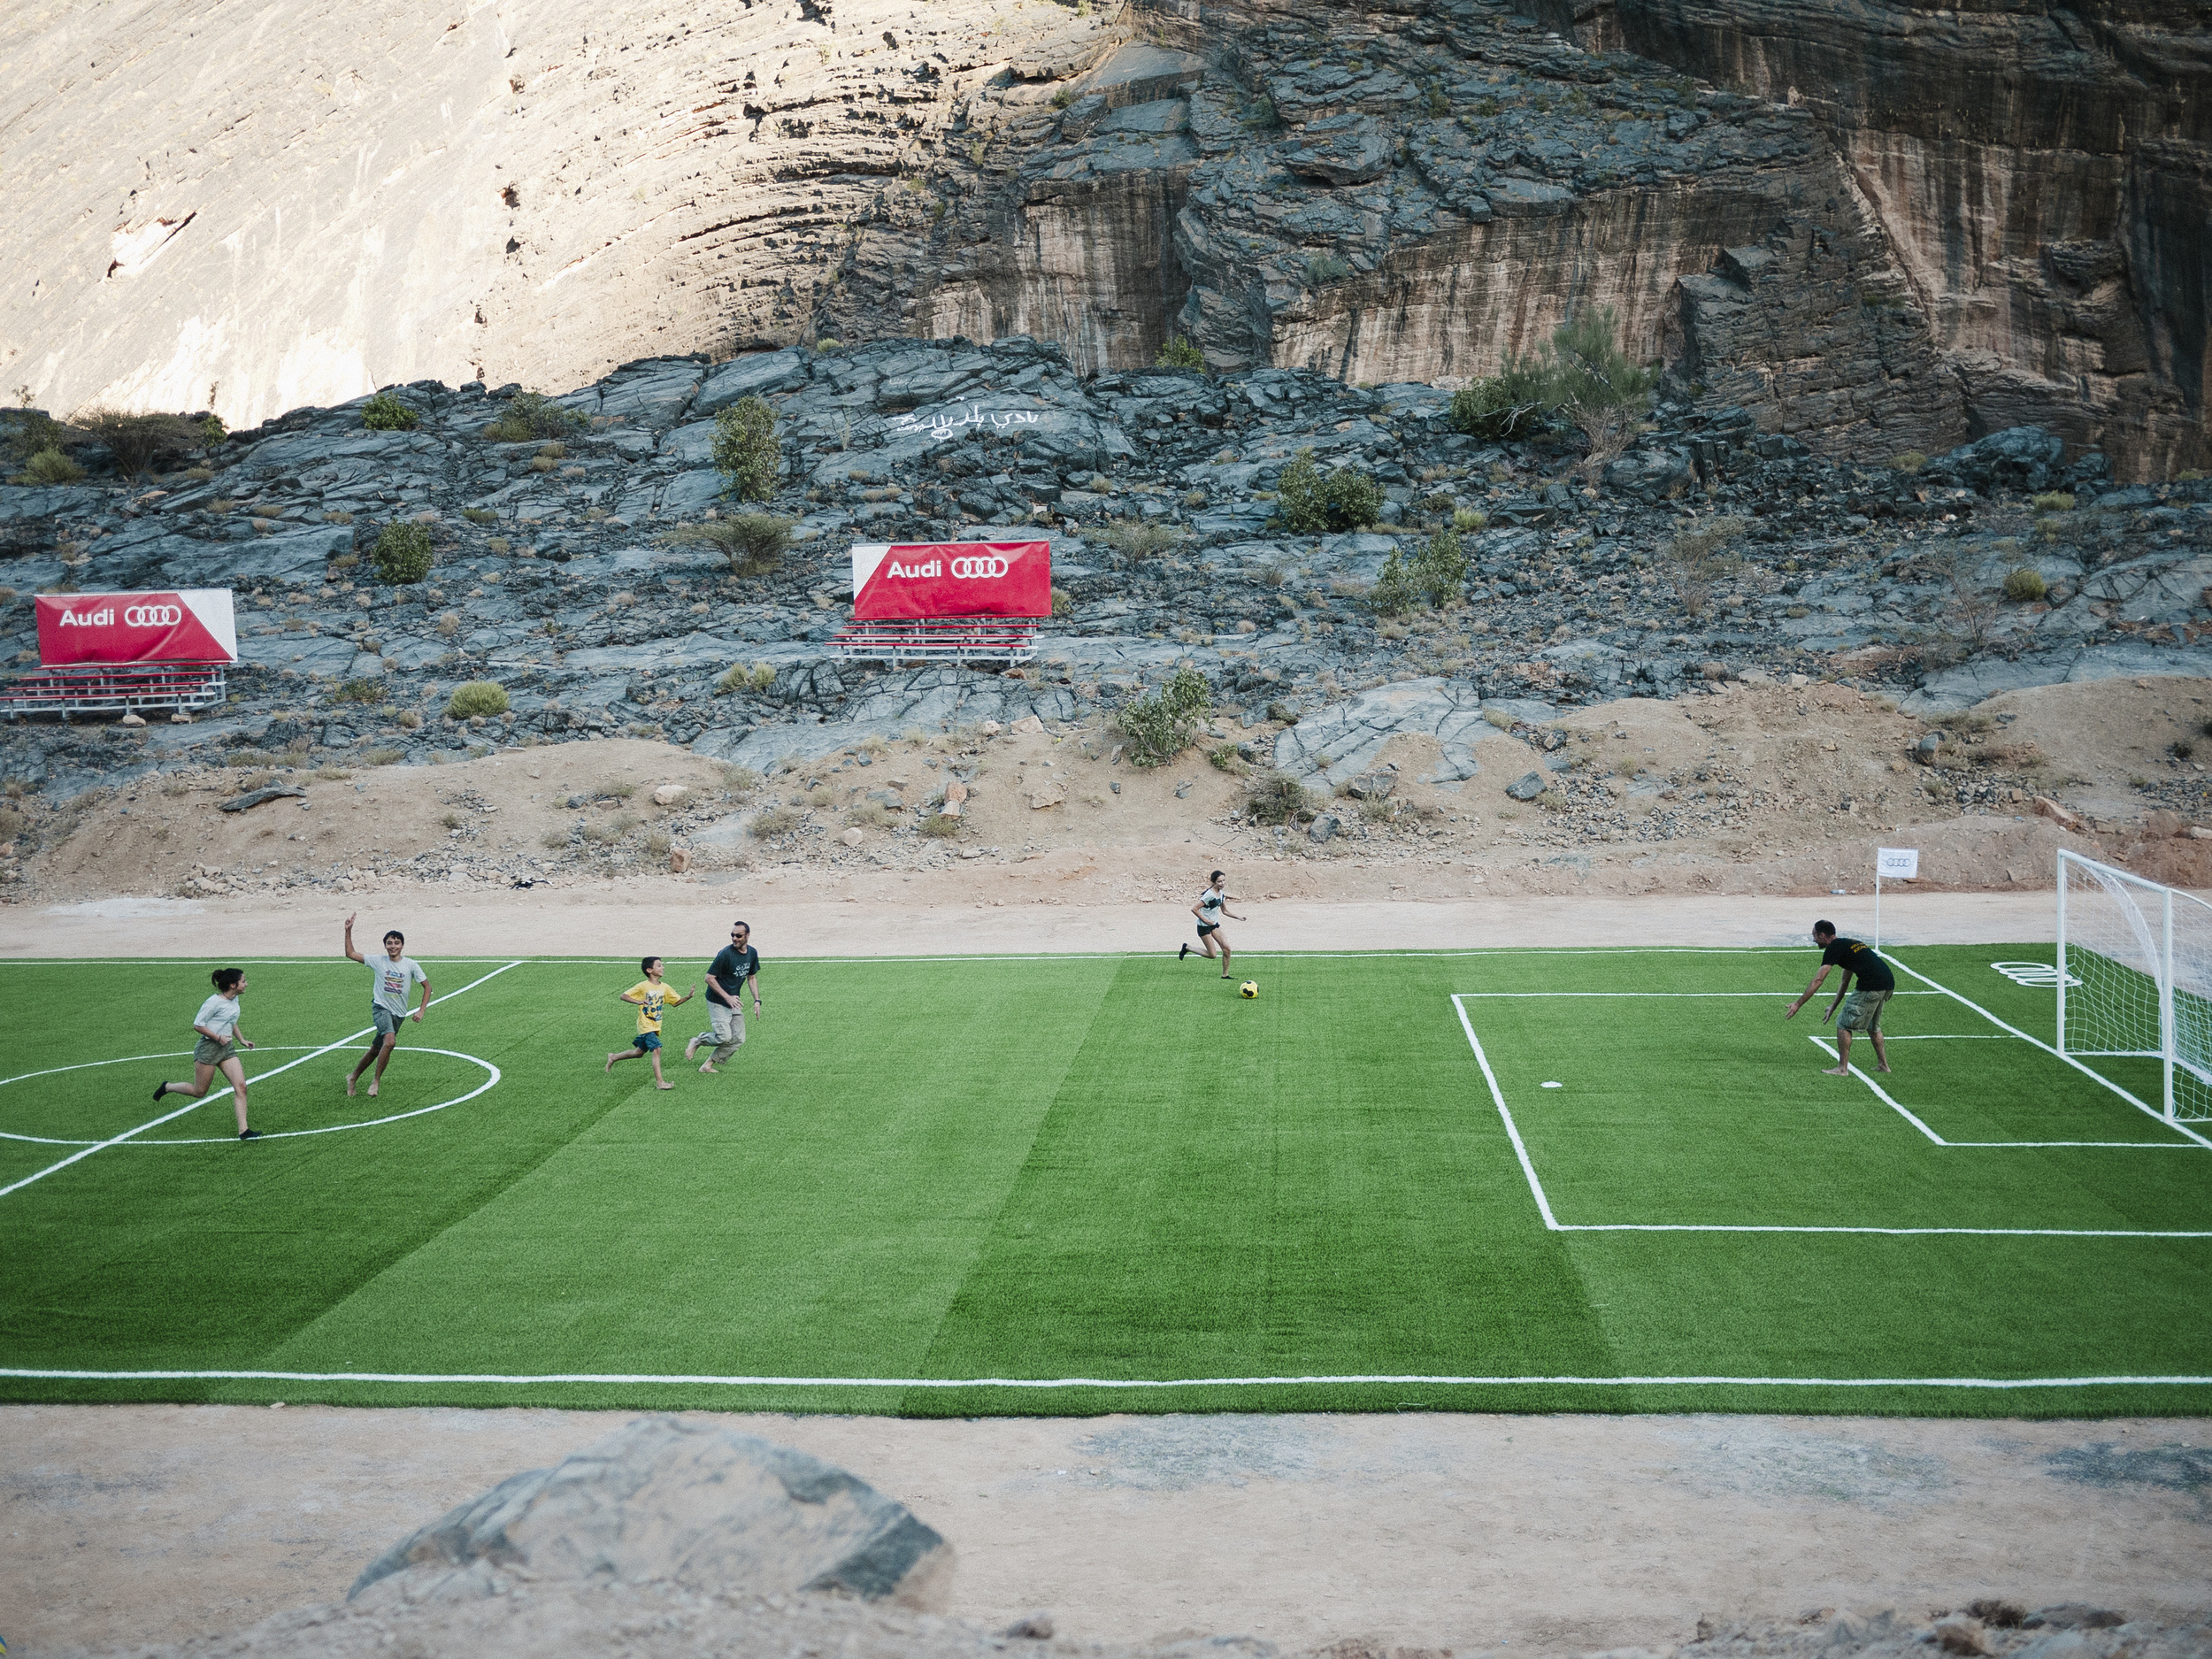 A random Soccer Field we came across on our way to Bilad Sayt.